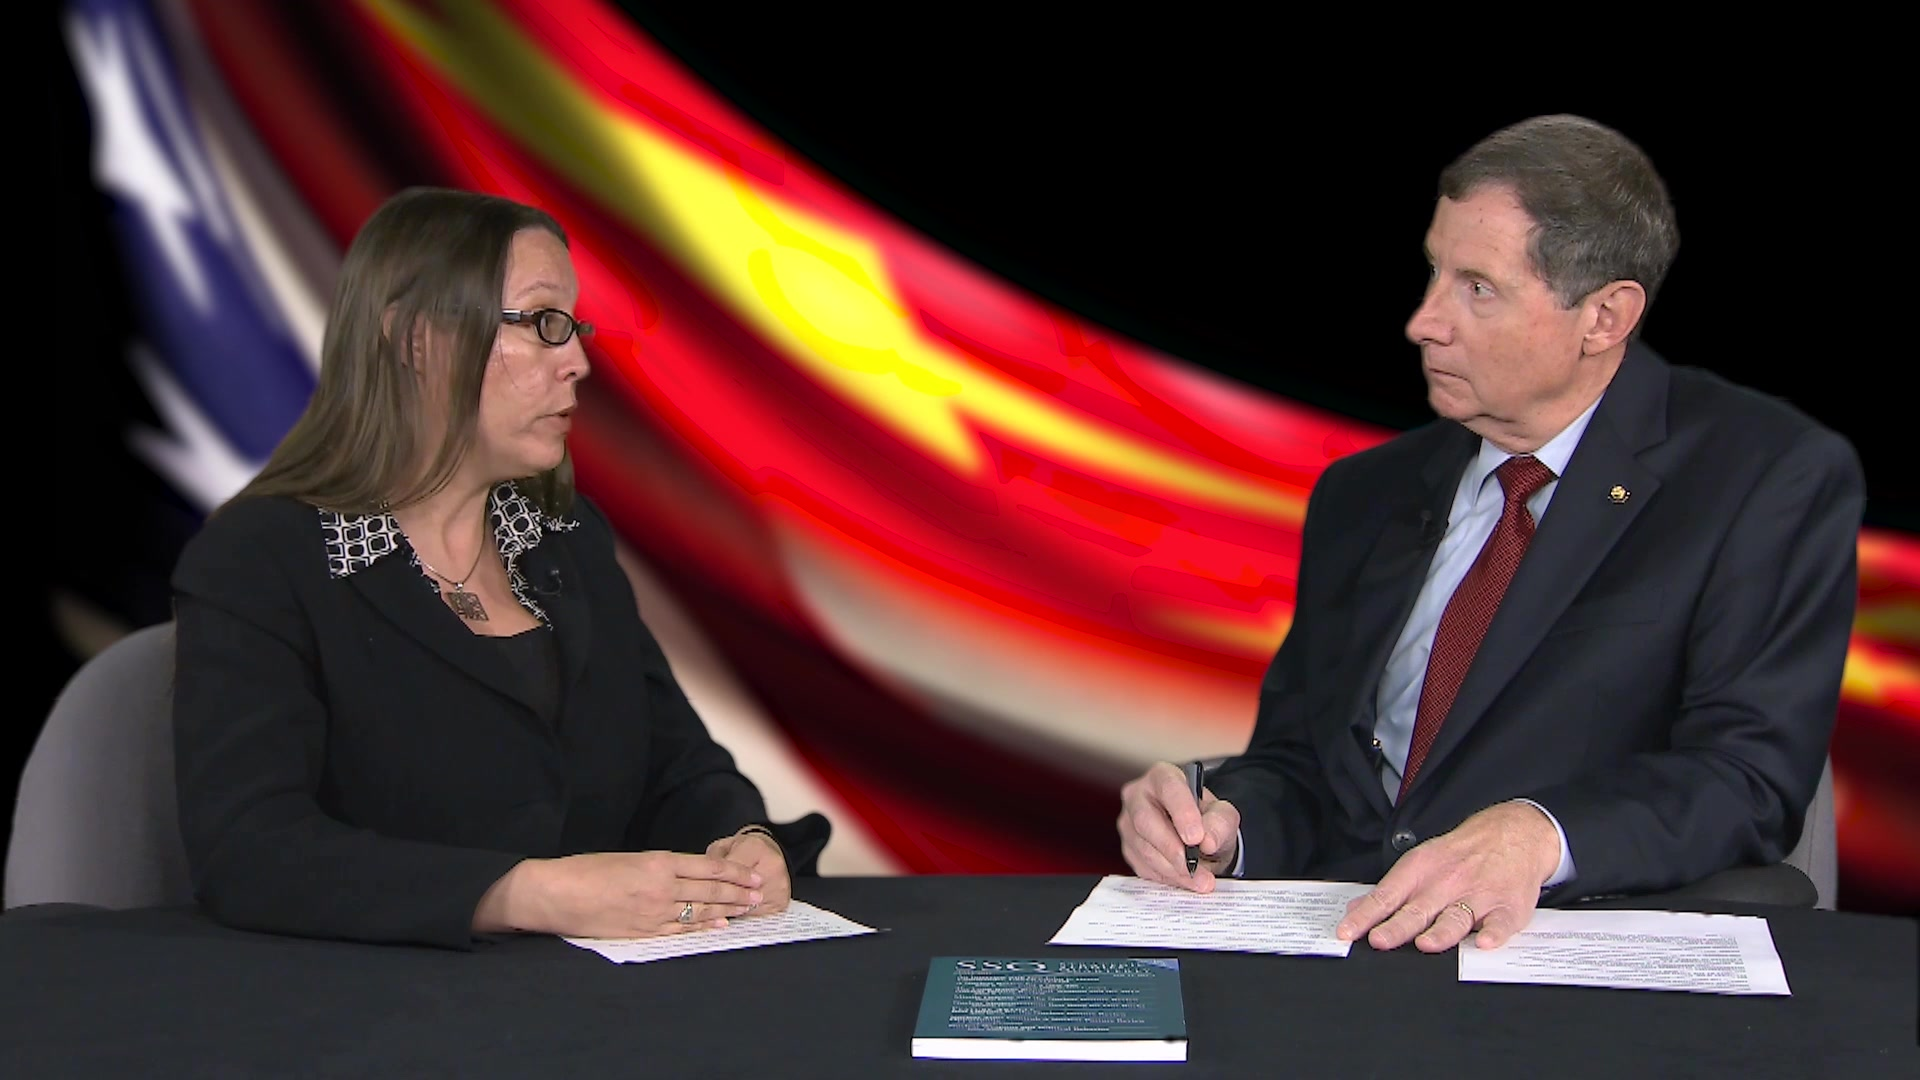 In this edition of Strategic Studies Quarterly (SSQ): Issues and Answers, the Editor of SSQ hosts a discussion about US-China Relations with Dr. Dawn Murphy from Air University's Air War College (AWC).